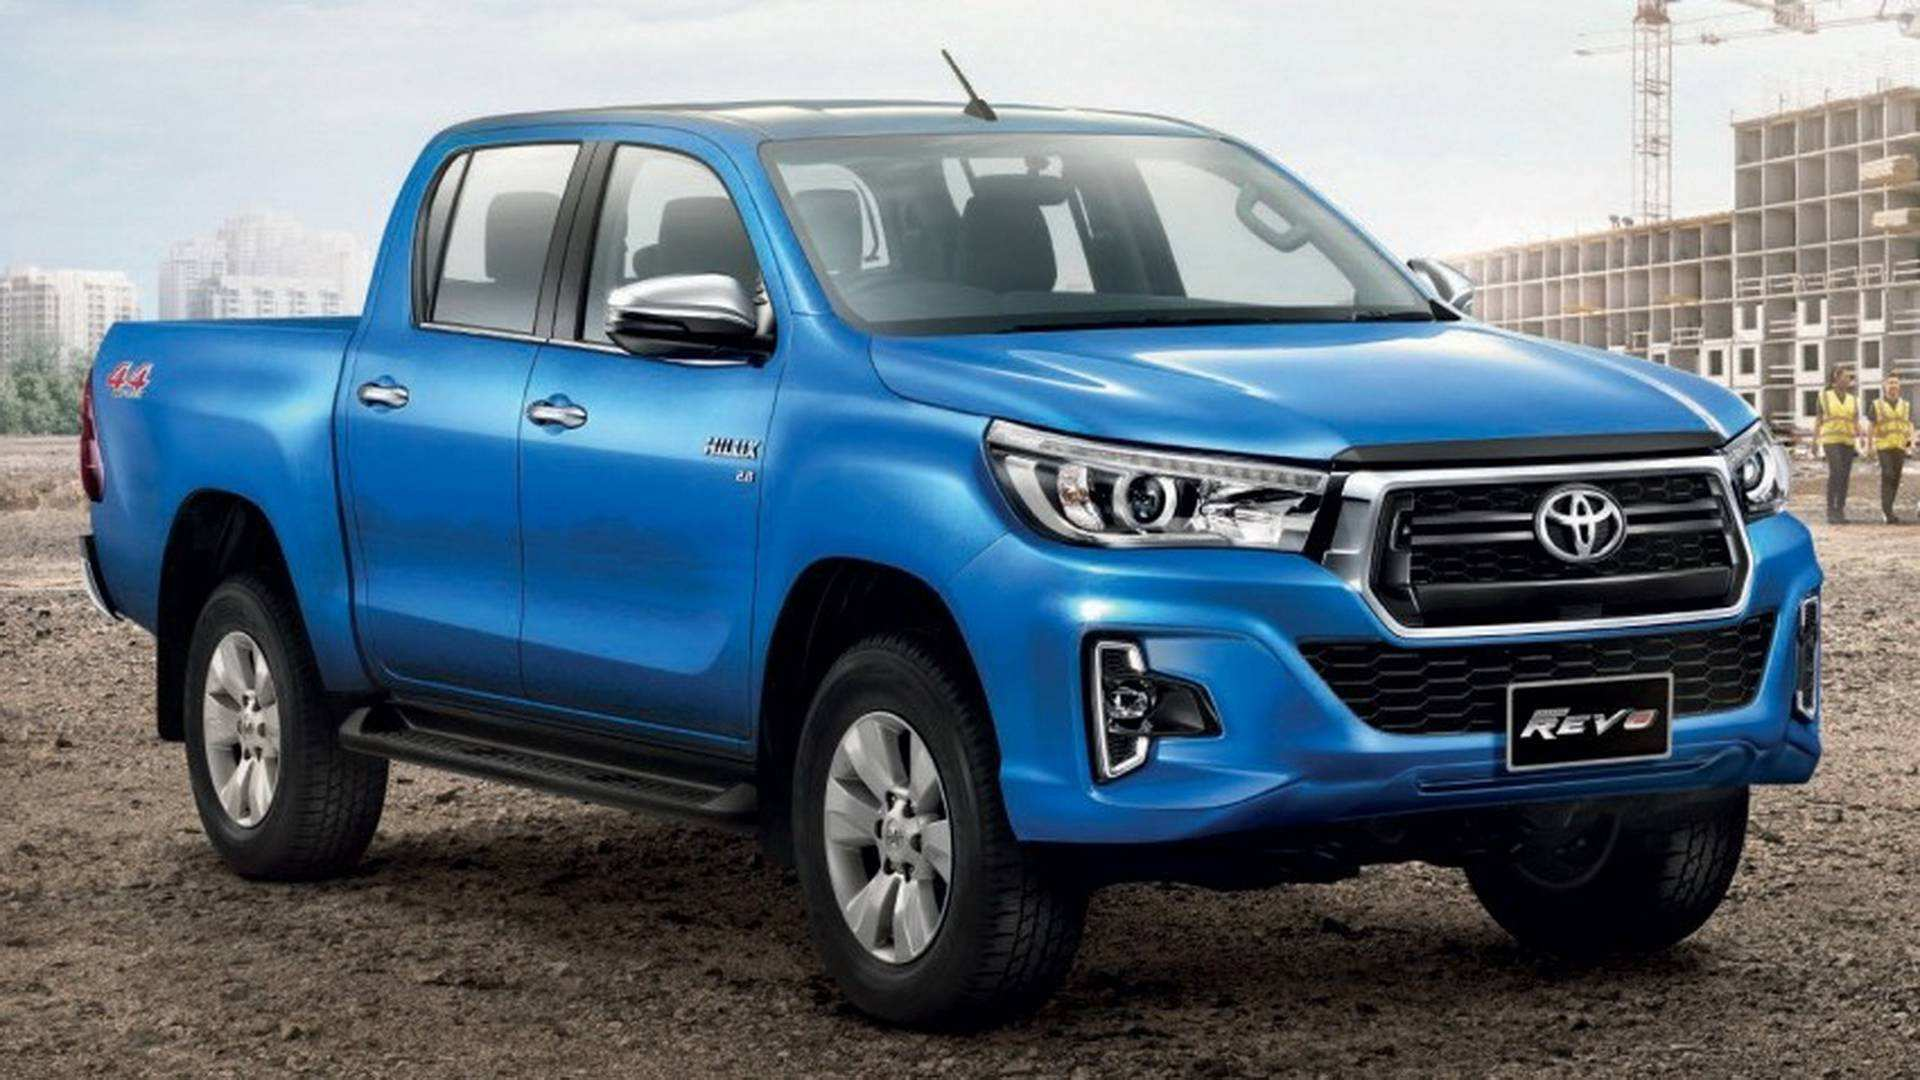 30 New Best Toyota Hilux 2019 Facelift Concept Configurations with Best Toyota Hilux 2019 Facelift Concept